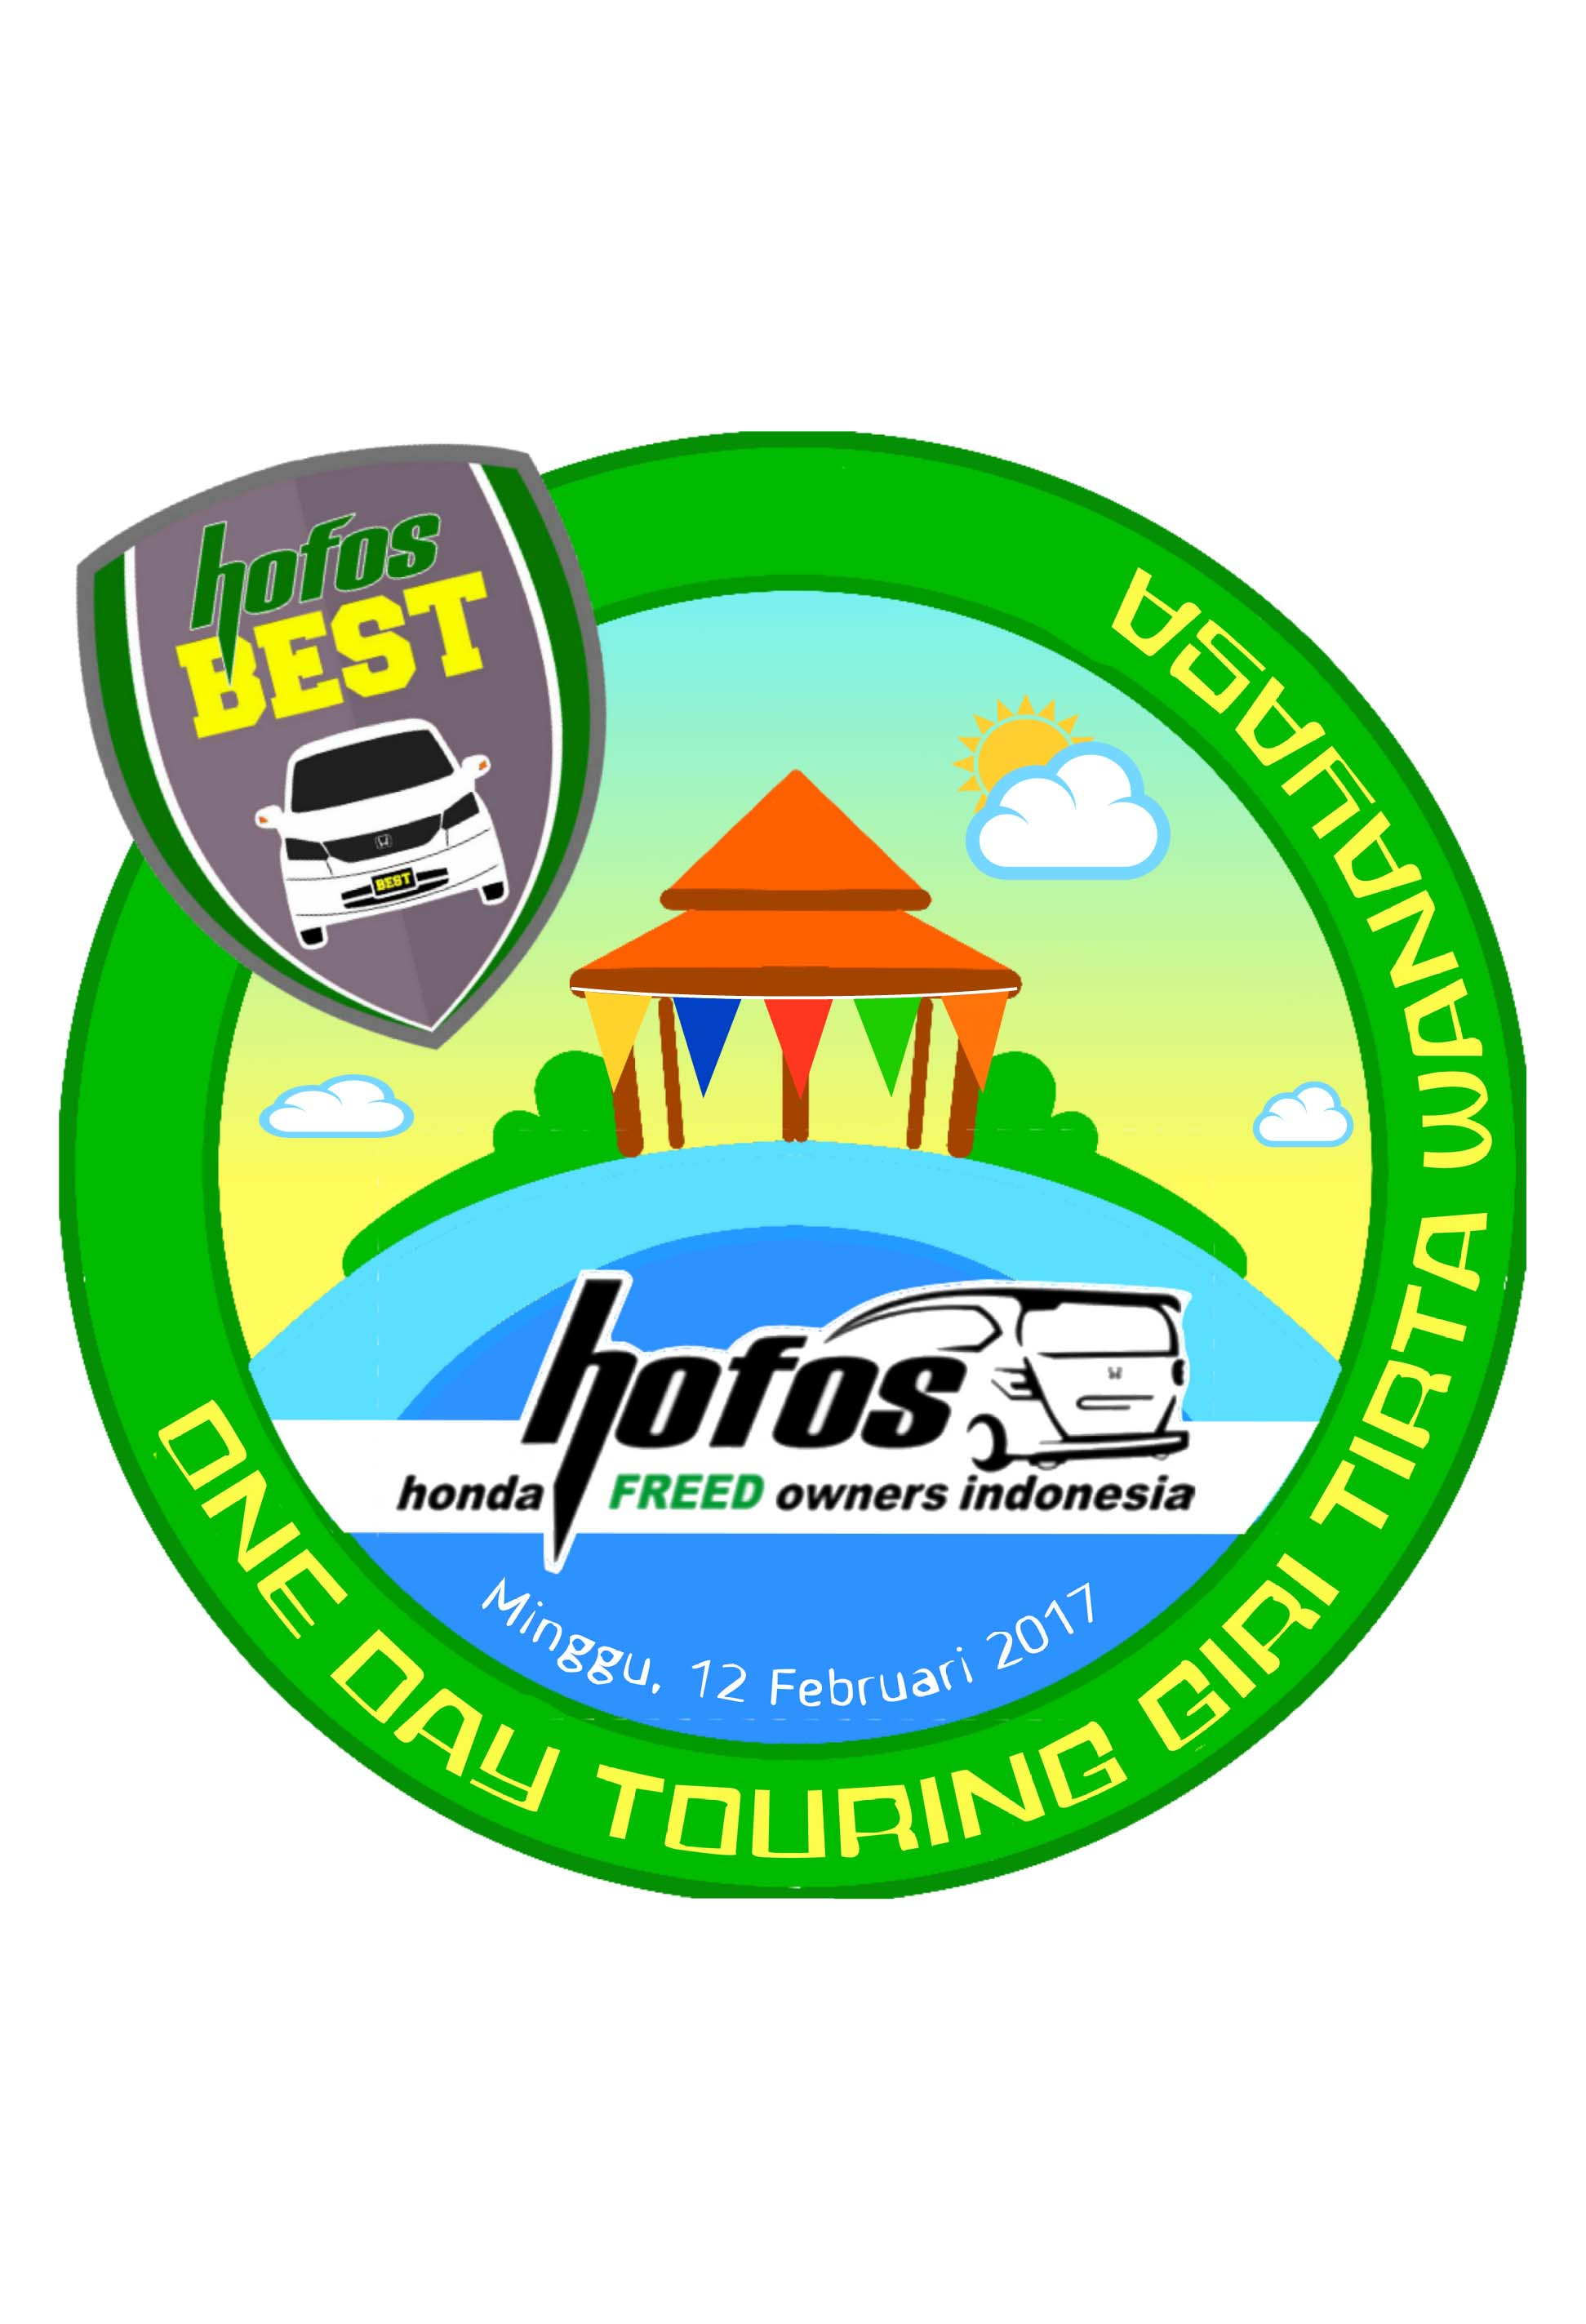 One Day Touring HOFOS BEST ke Giri Tirta Wanayasa